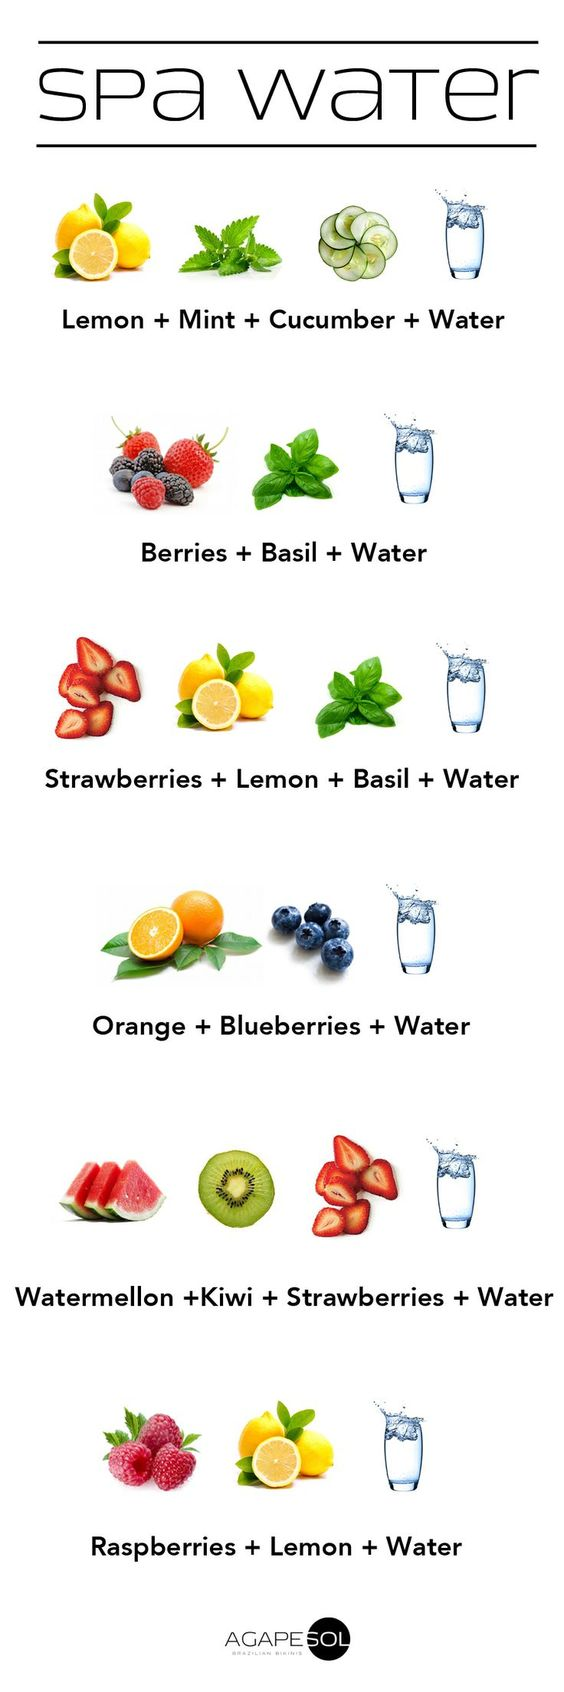 Stay hydrated! Adding stuff like fruits, vegetables, and herbs to your water makes it easier and fun to drink up! #spawater #h2o | thebeautyspotqld.com.au